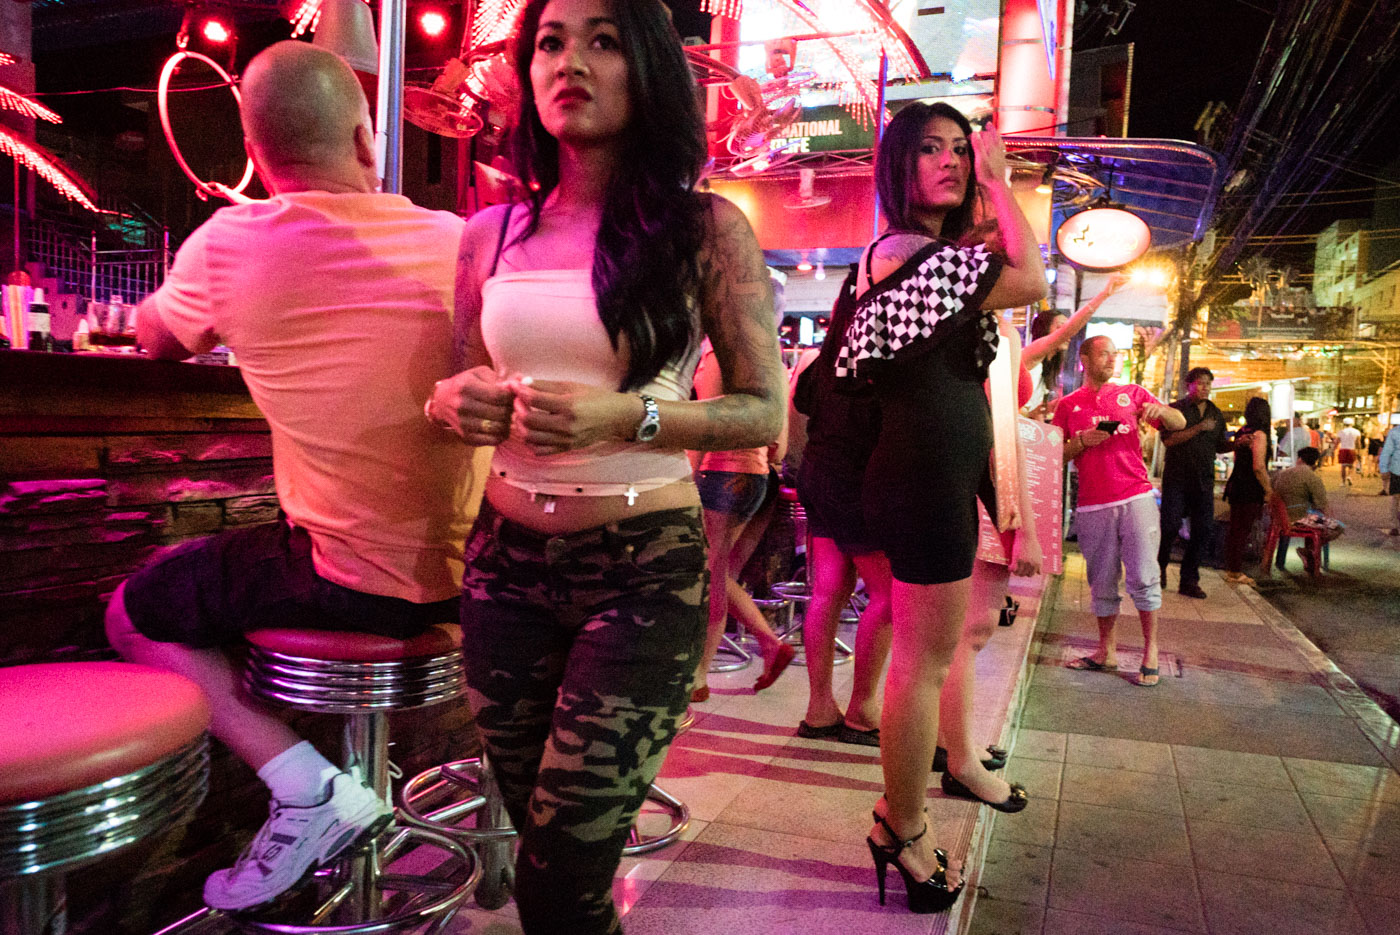 prostitutes in thailand